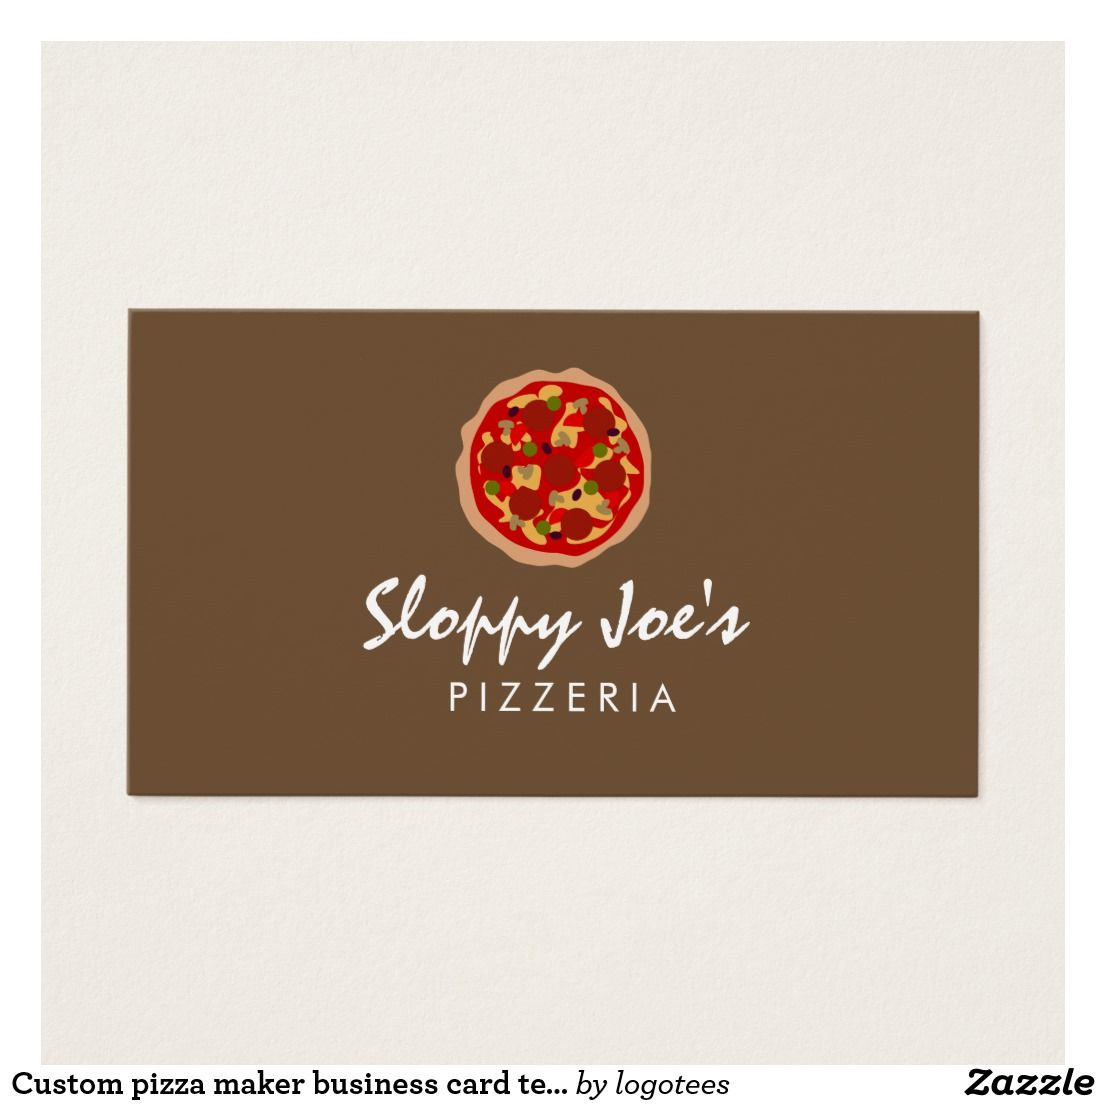 Custom pizza maker business card template simple pepperoni pizza custom pizza maker business card template fbccfo Images